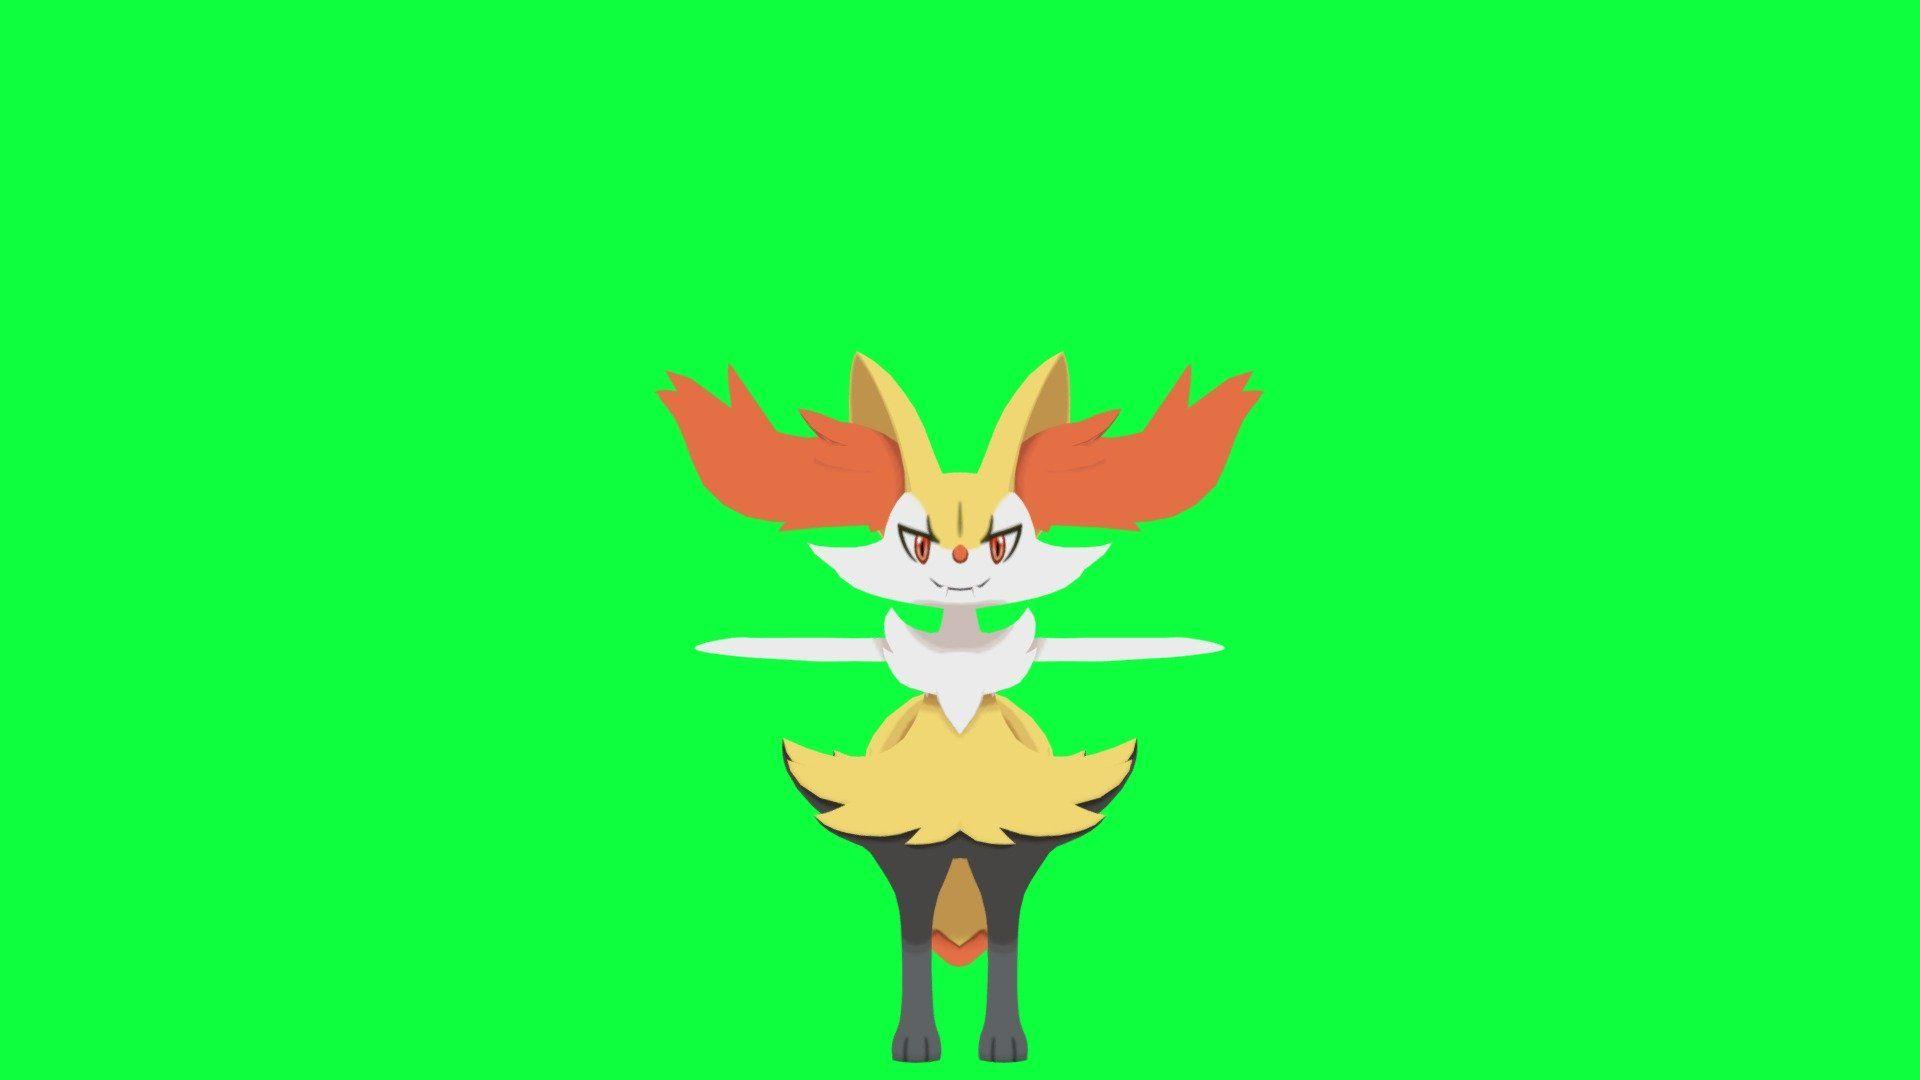 3DS - Pokemon X Y - Braixen - Download Free 3D model by akennedy007 ...